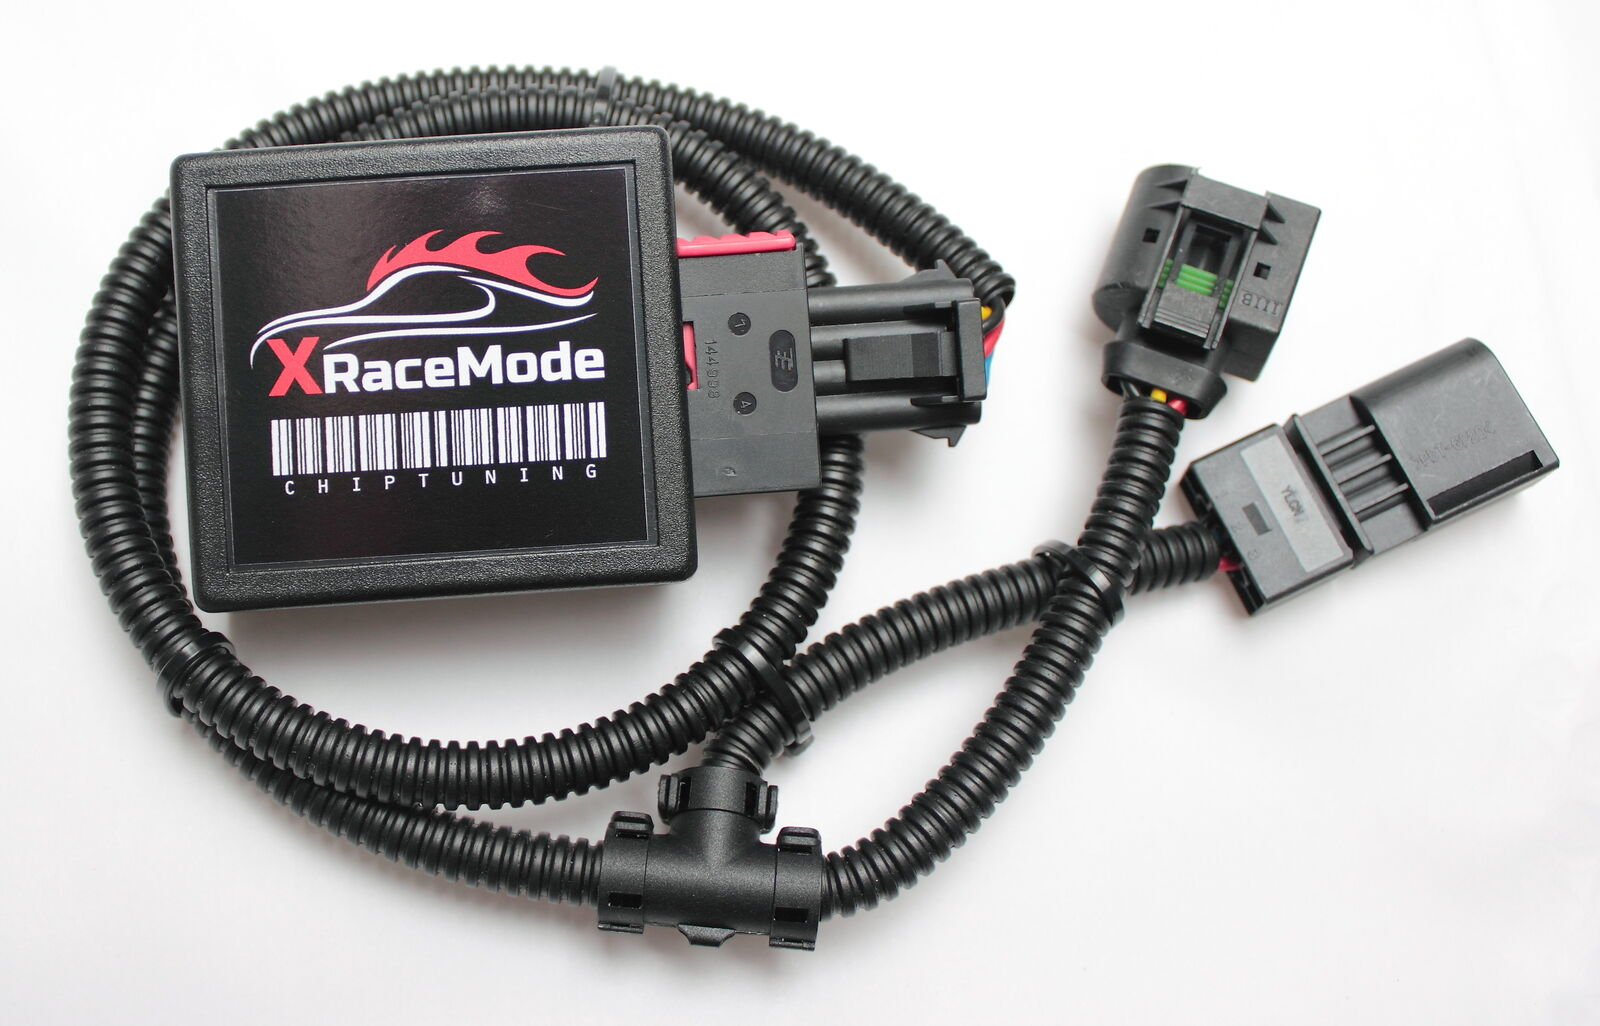 CDTI Power Diesel Box XRaceMode 1.3 1.7 1.9 CHIP TUNING OPEL ASTRA H 35HP